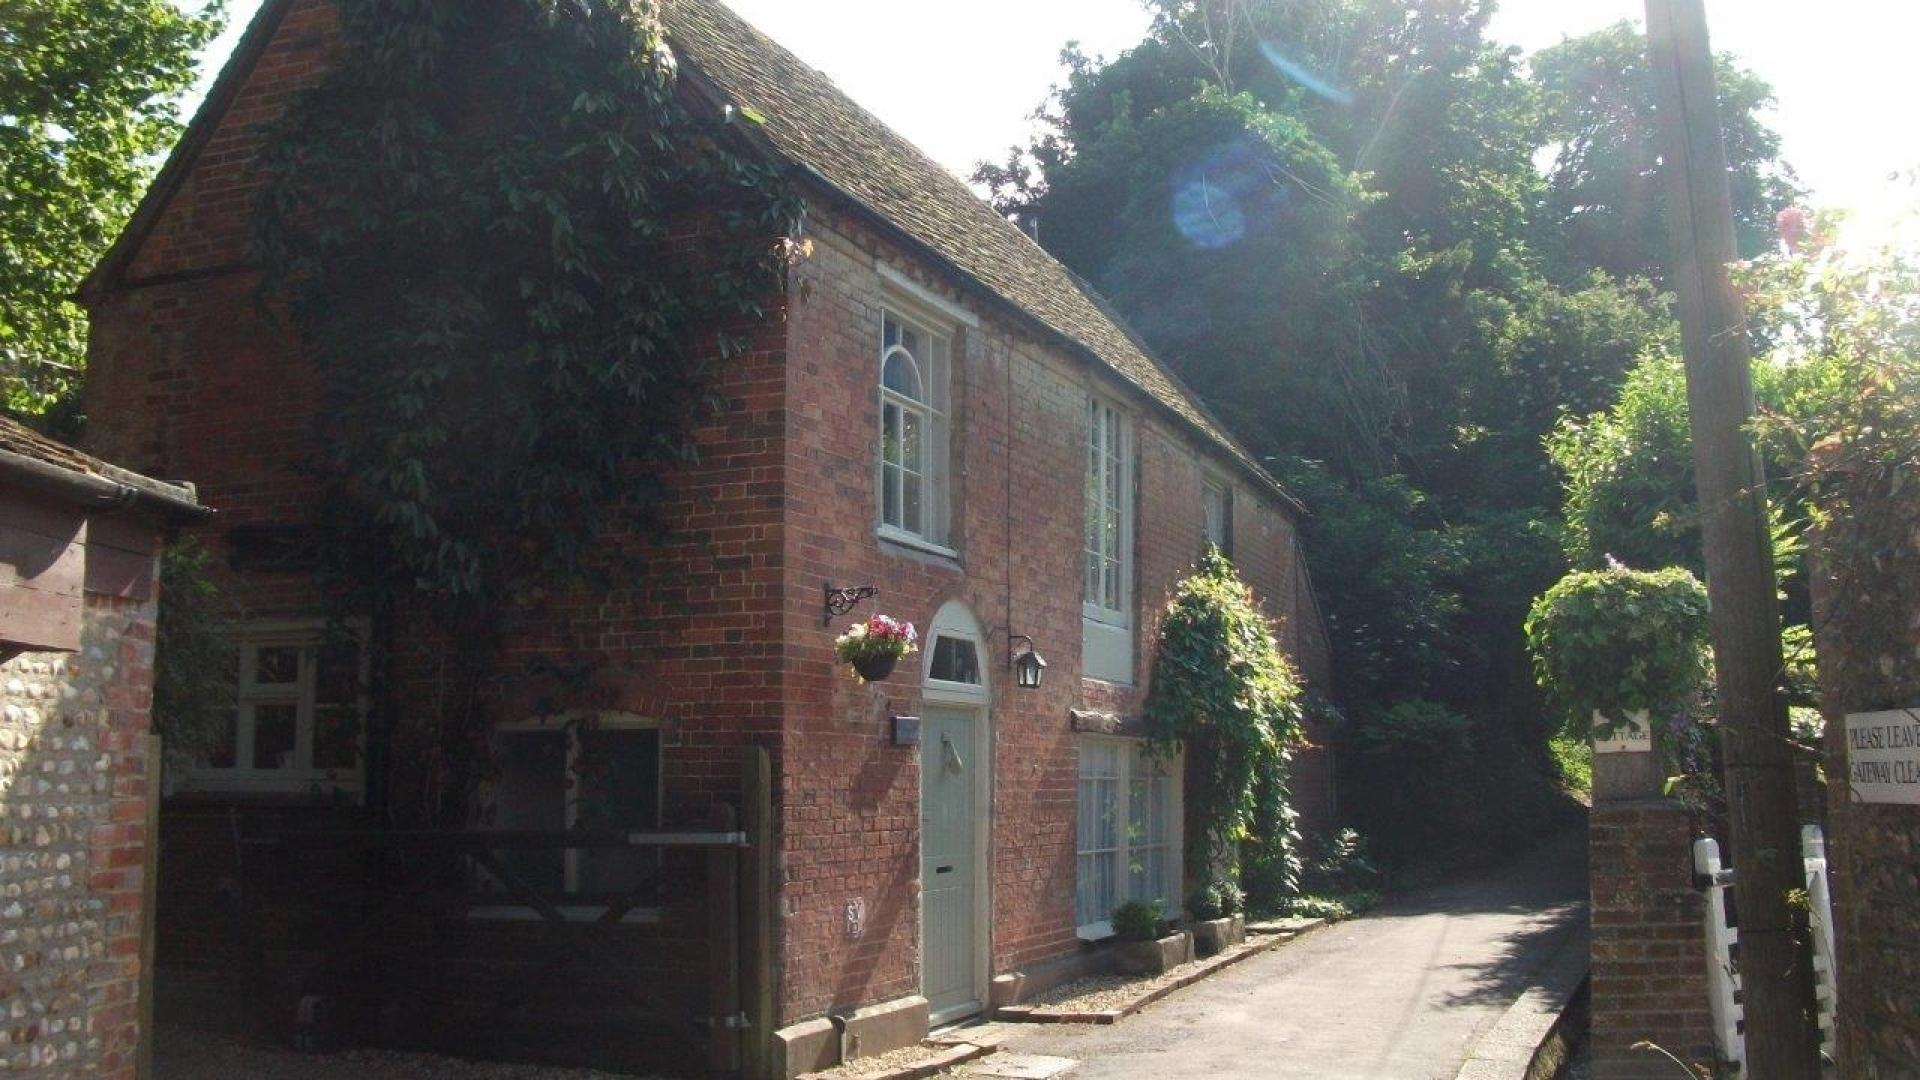 3 Bedroom Private cottage in Sussex, United Kingdom